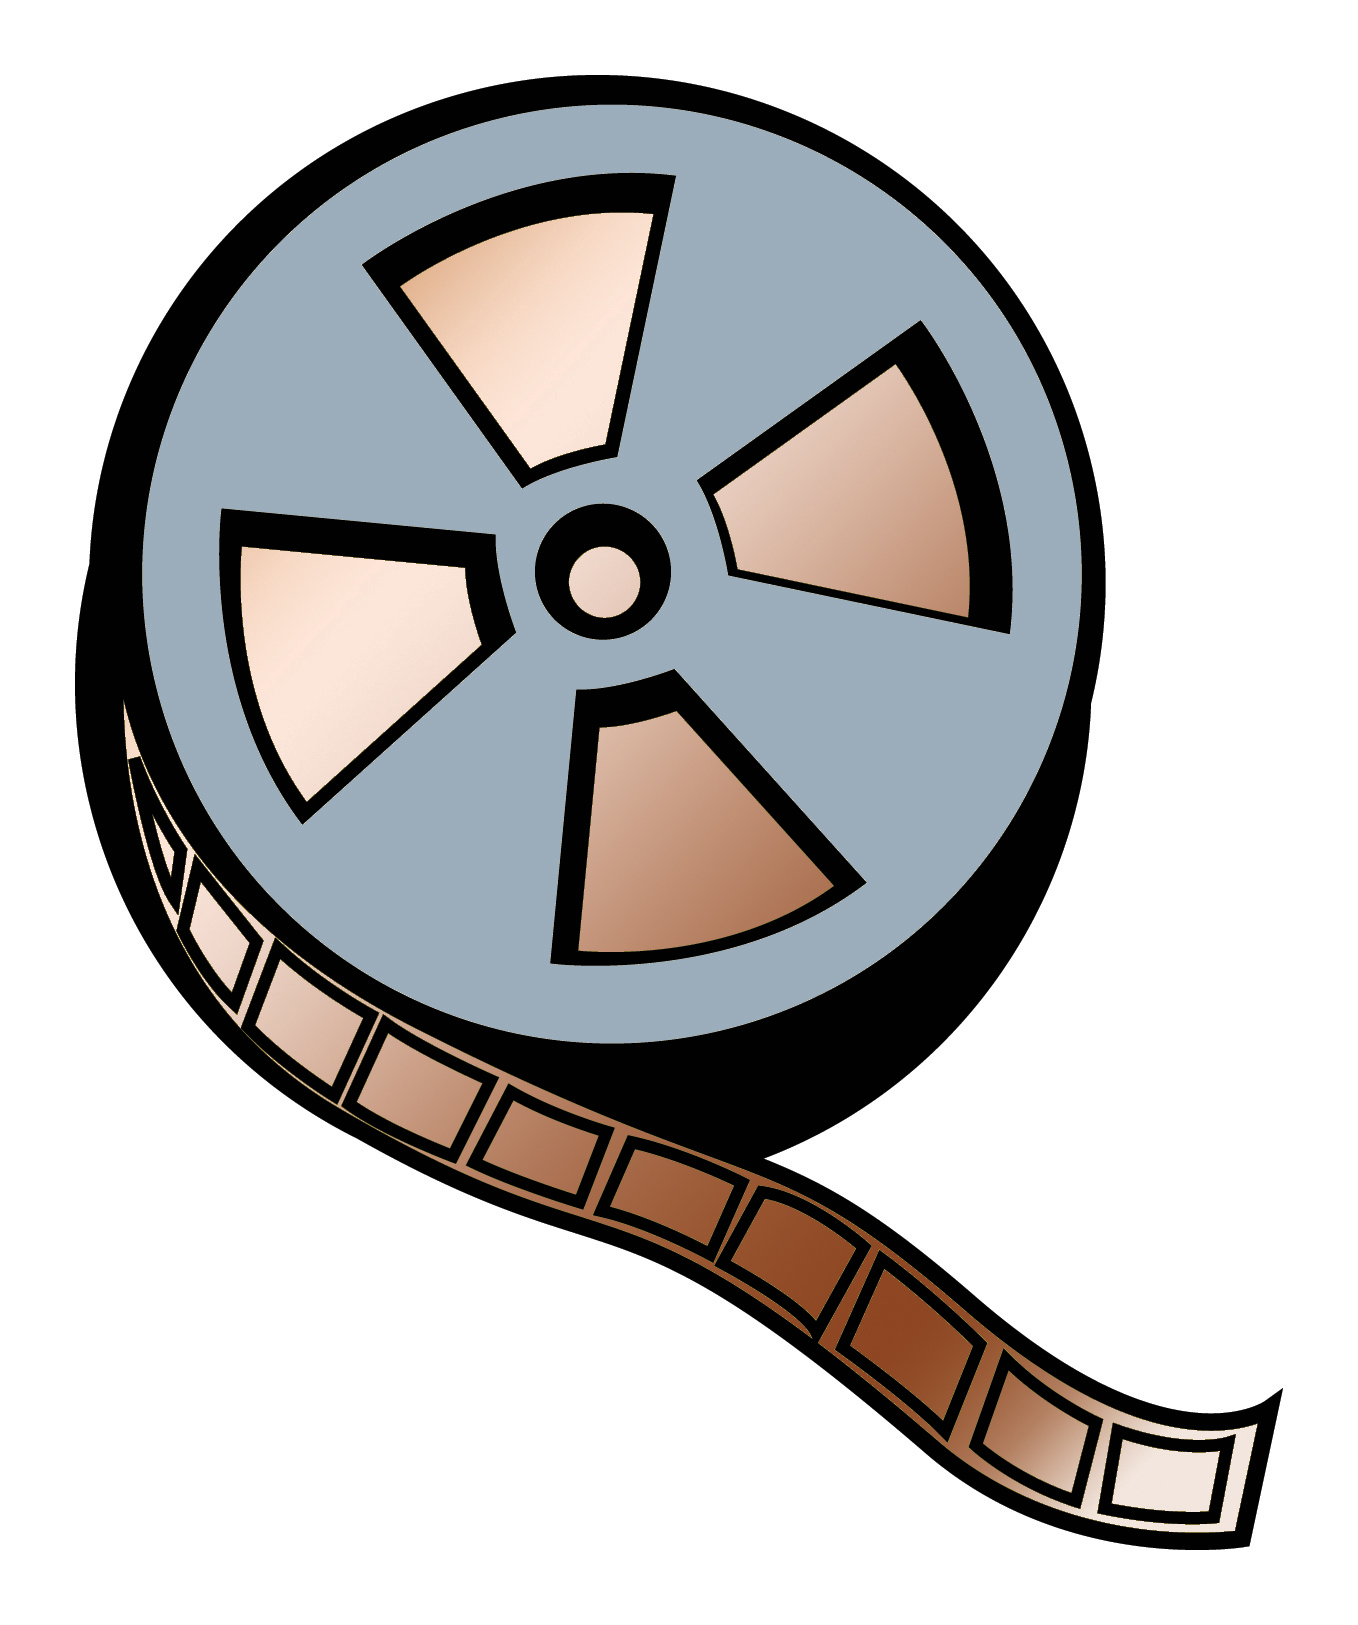 Movie Reel Clip Art - Clipart library